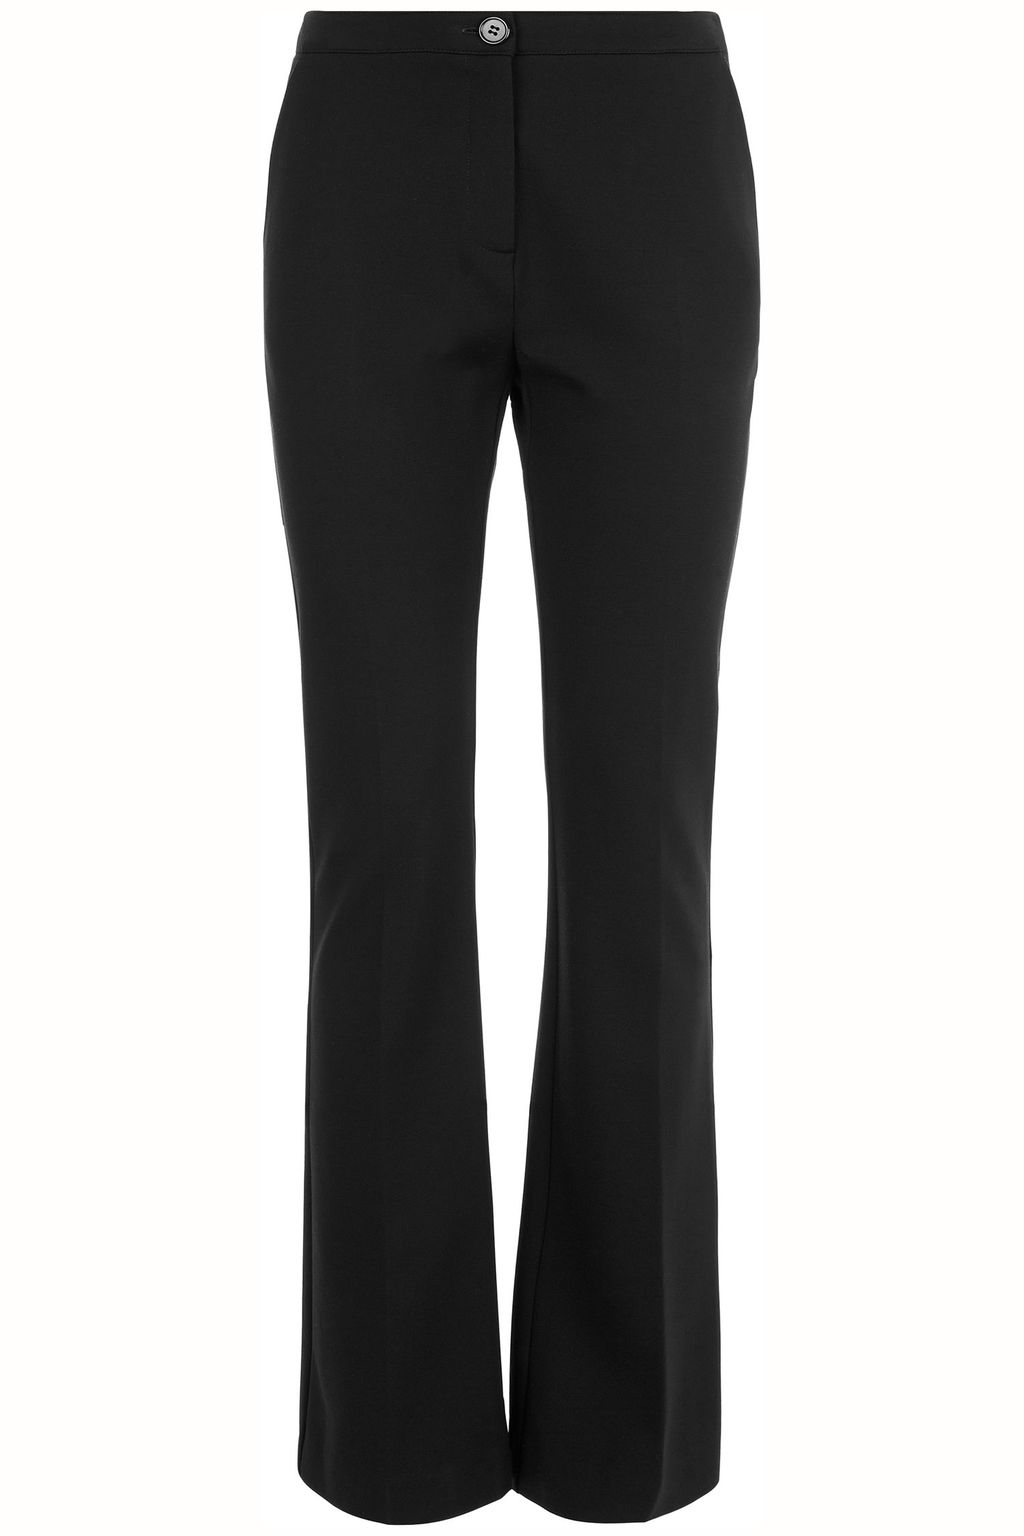 Shelby Trouser, Black - length: standard; pattern: plain; waist: mid/regular rise; predominant colour: black; occasions: work, creative work; fibres: polyester/polyamide - 100%; waist detail: feature waist detail; texture group: crepes; fit: bootcut; pattern type: fabric; style: standard; season: a/w 2015; wardrobe: basic